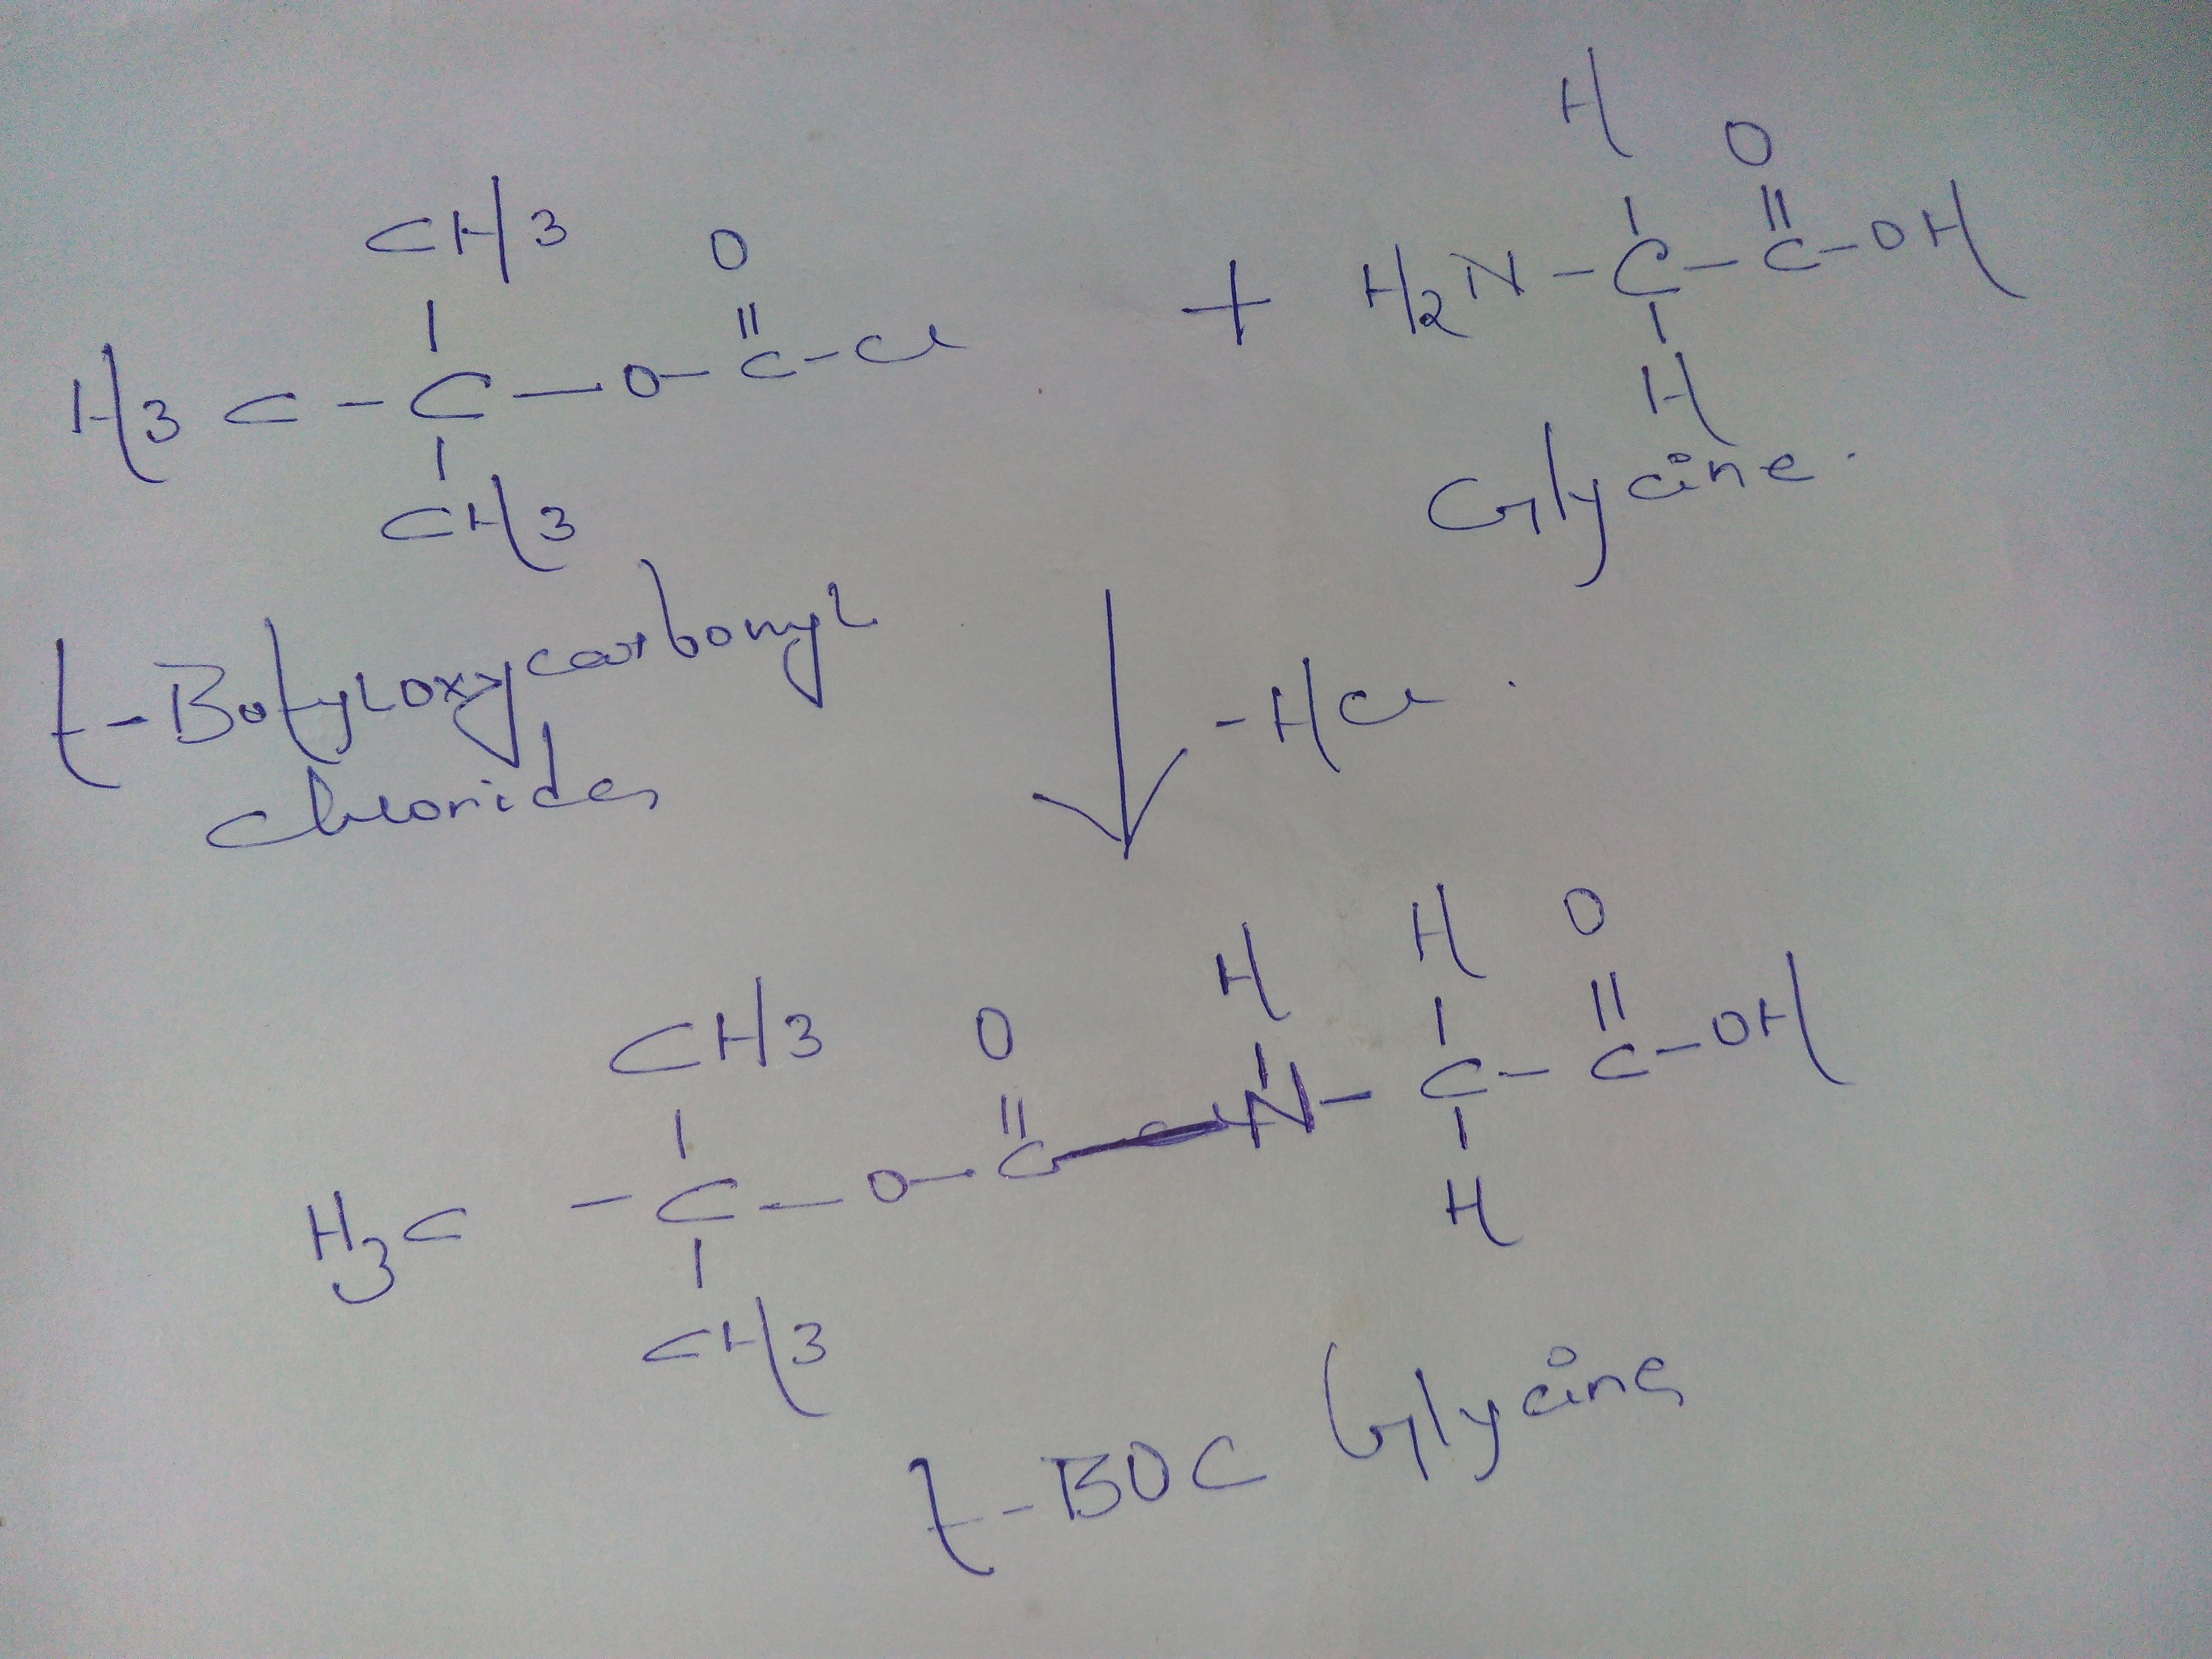 How to synthesize Ala-Gly dipeptide using solid phase